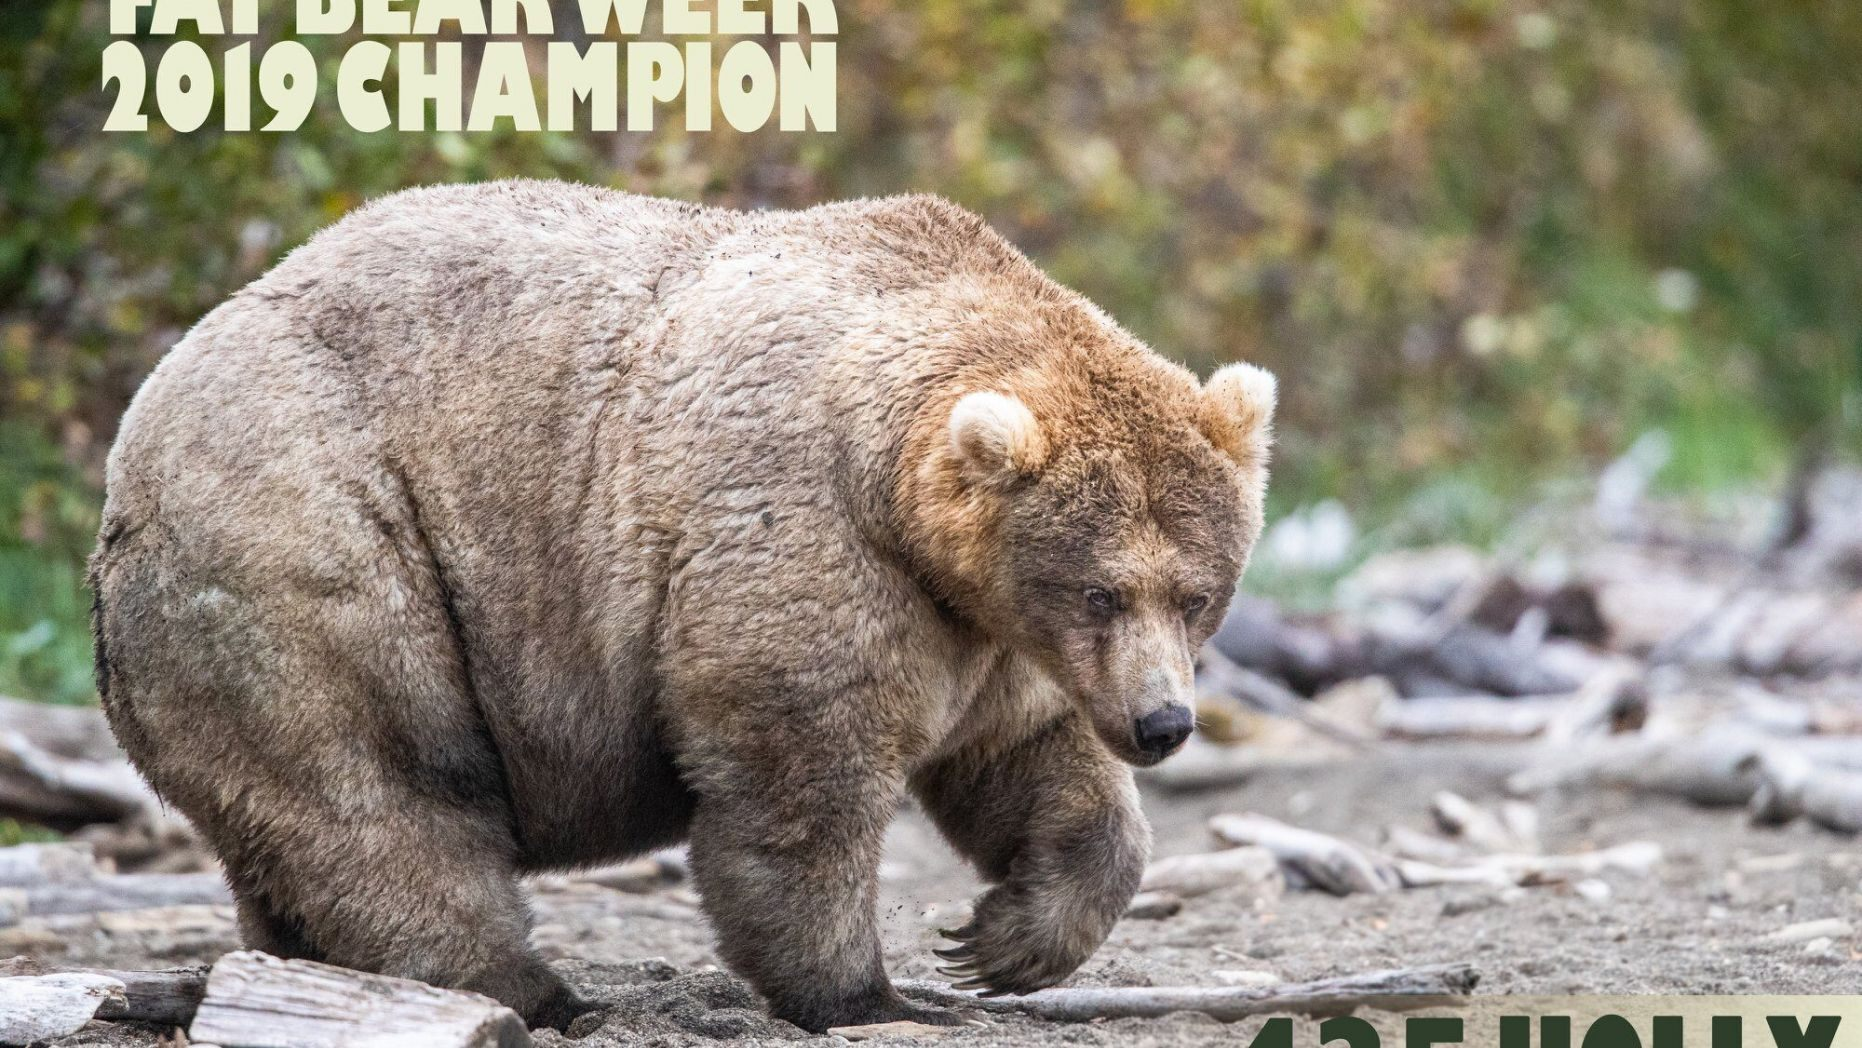 Fat Bear Week is Over but Pebble Mine Threat Continues